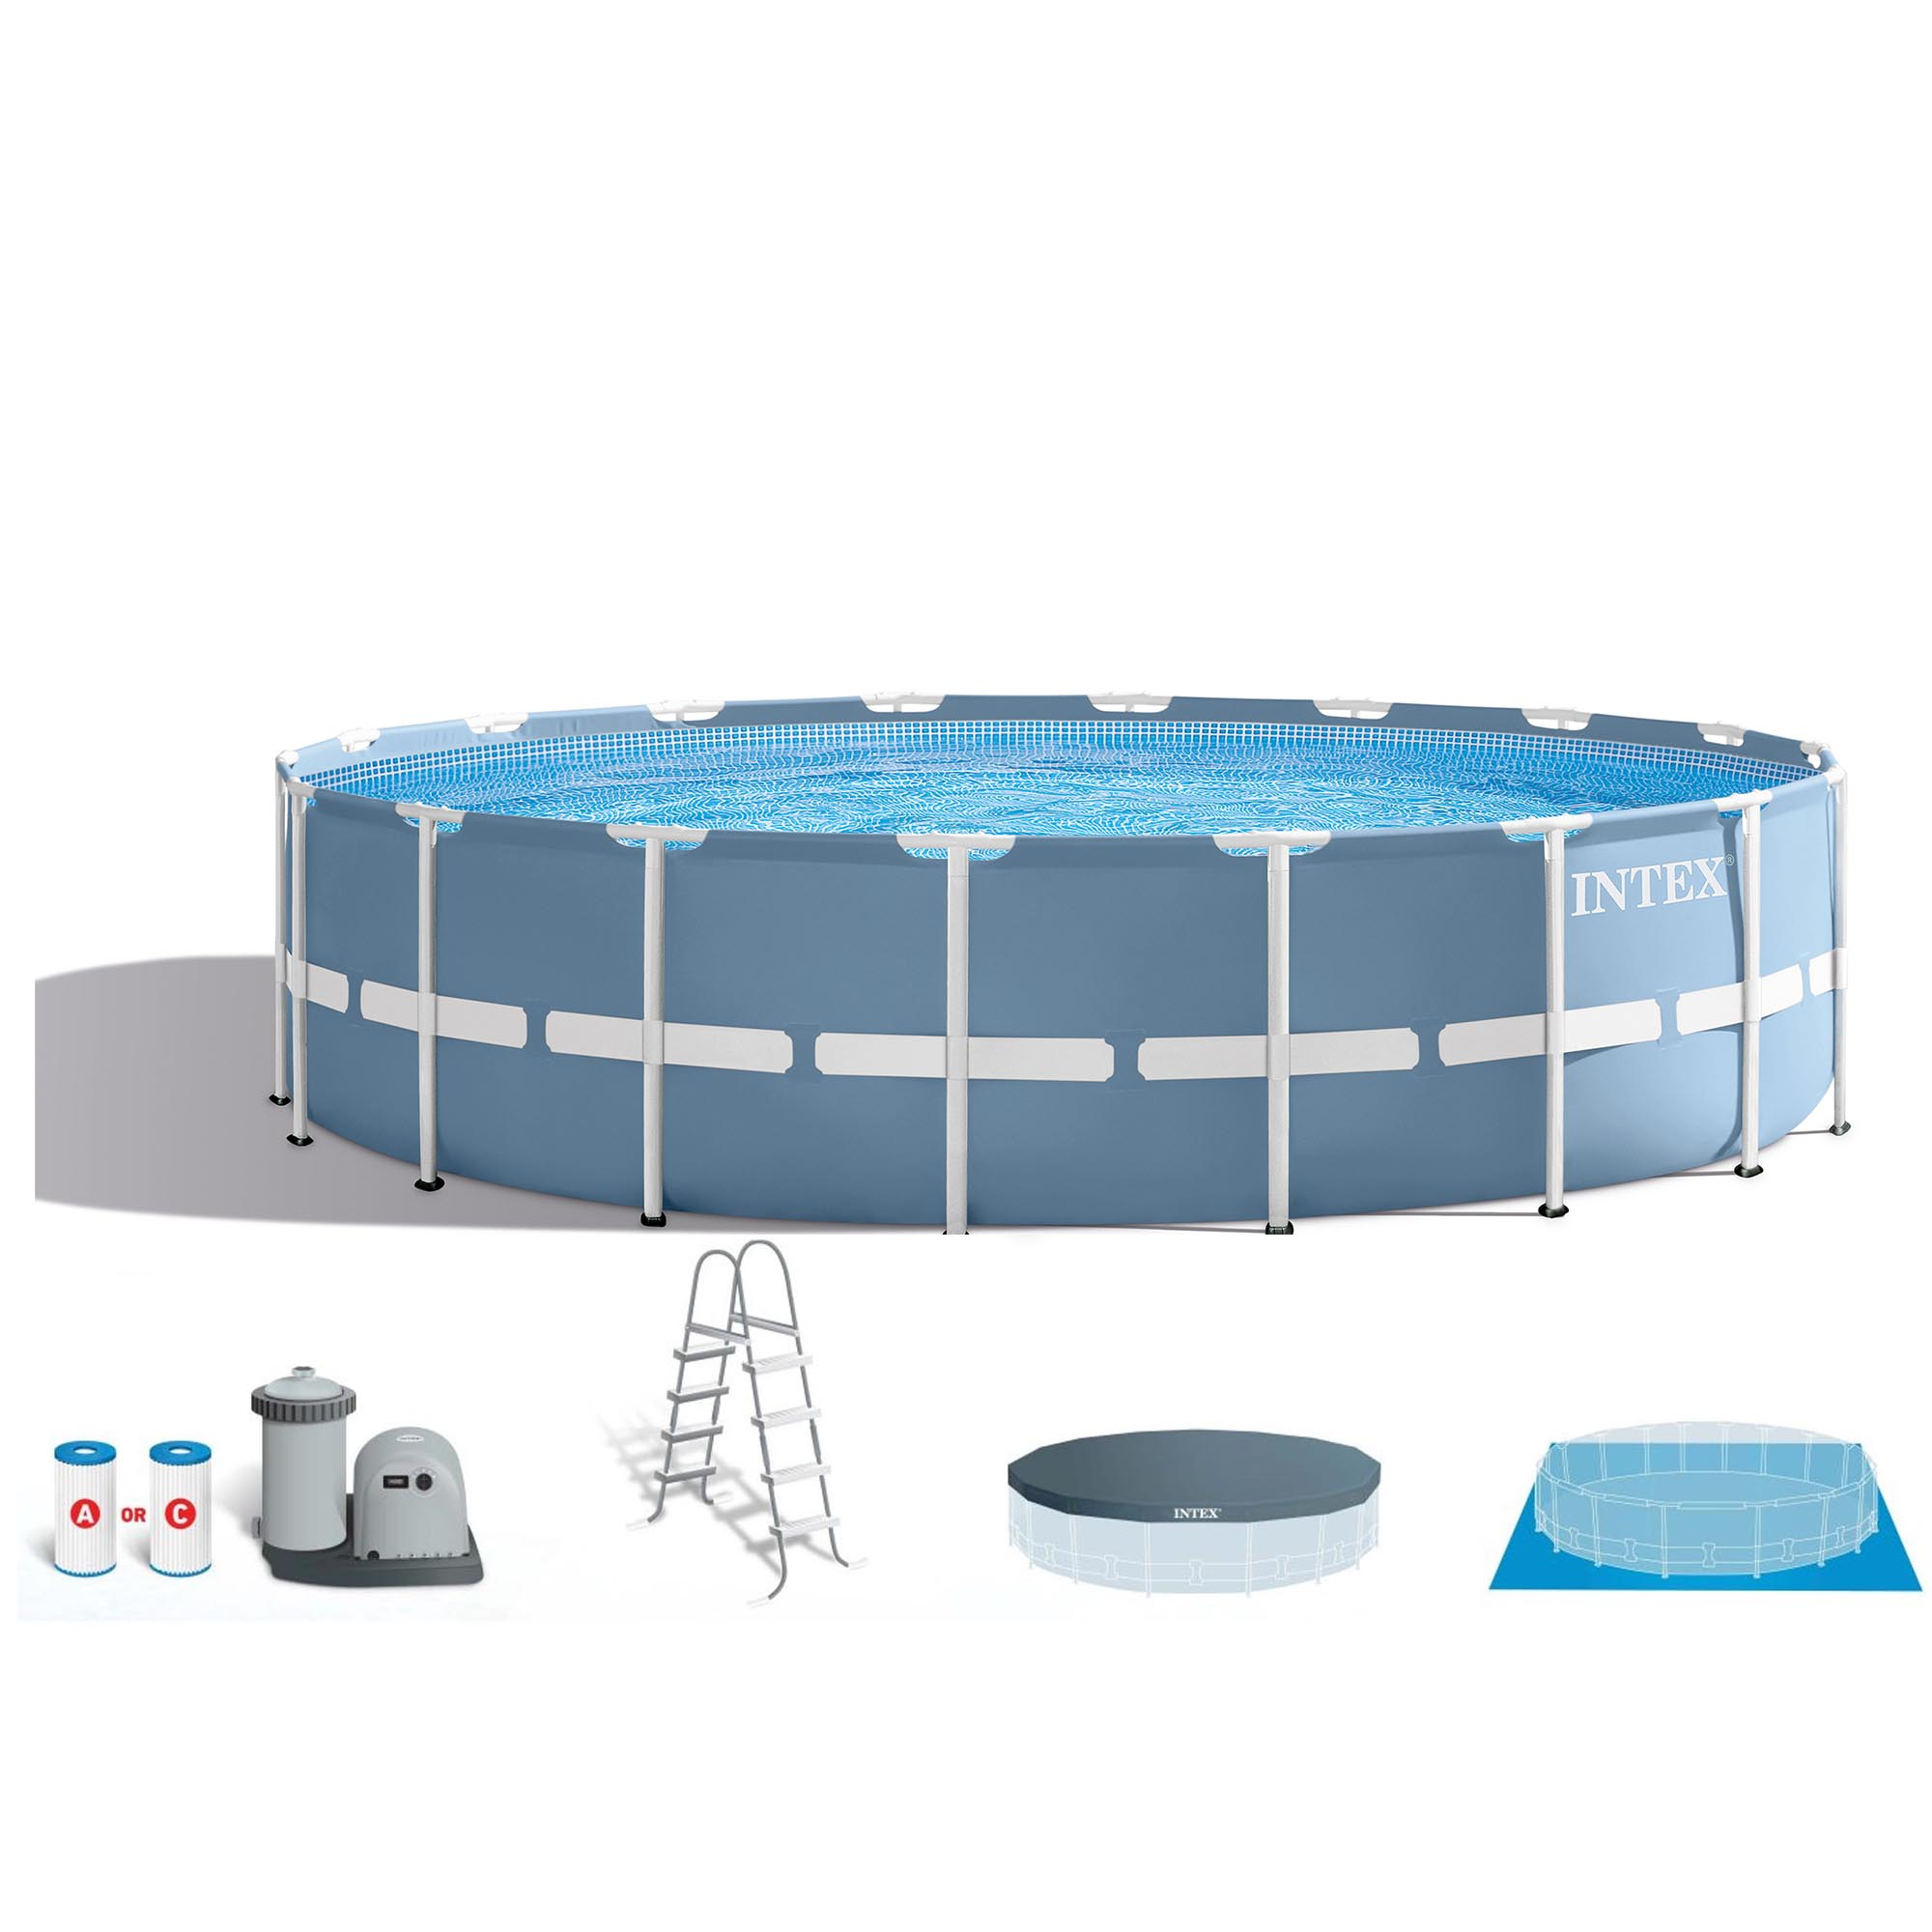 Intex 18 Feet x 48 Inches Prism Frame Swimming Pool Set Ladder, Cover, & Pump